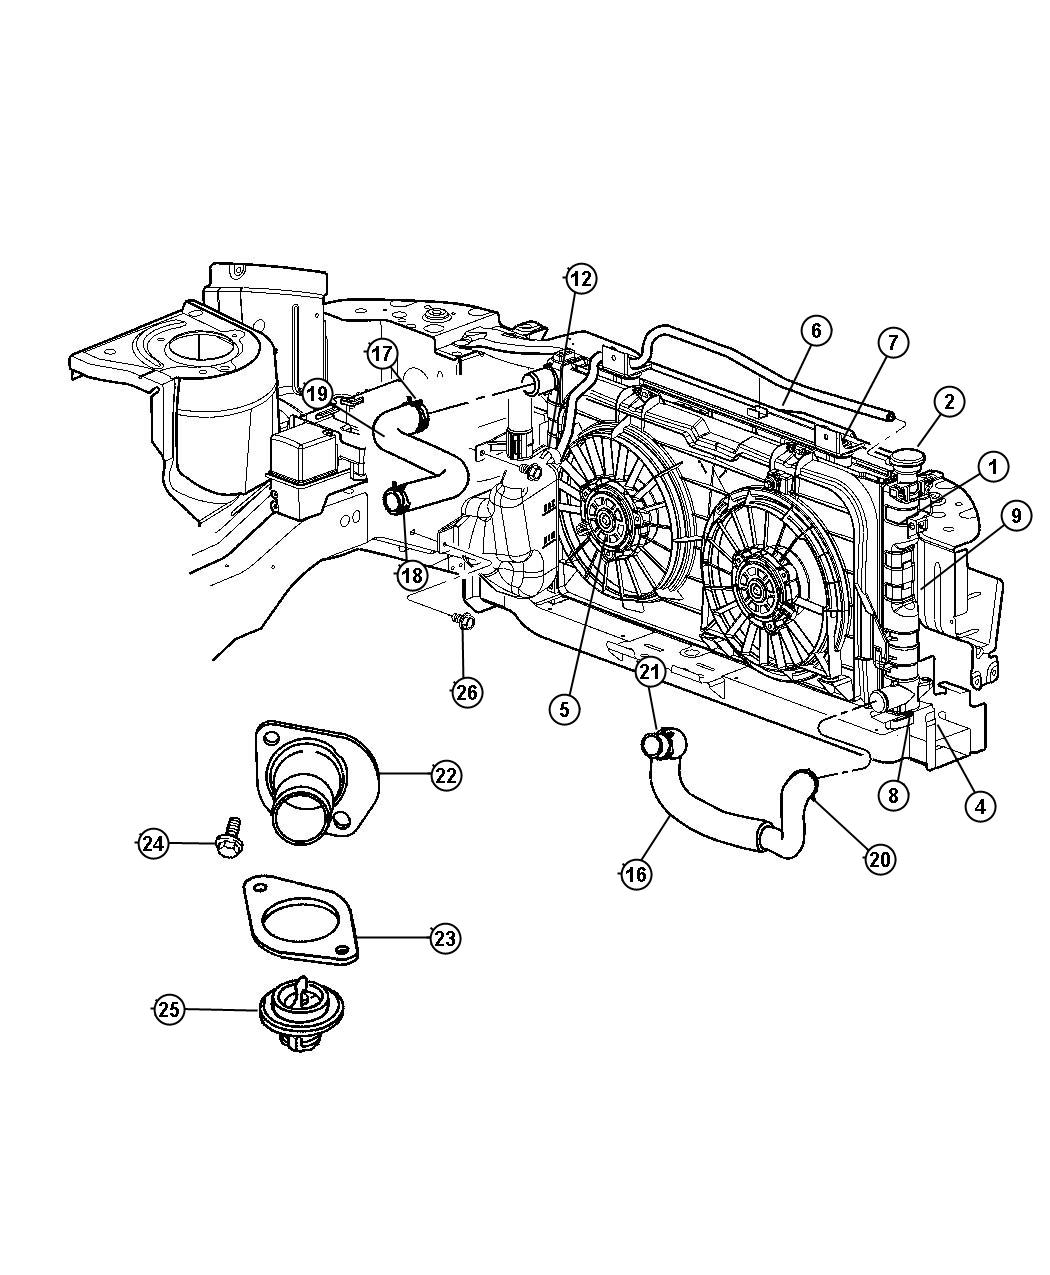 2001 Chrysler Town & Country Condenser. Air conditioning